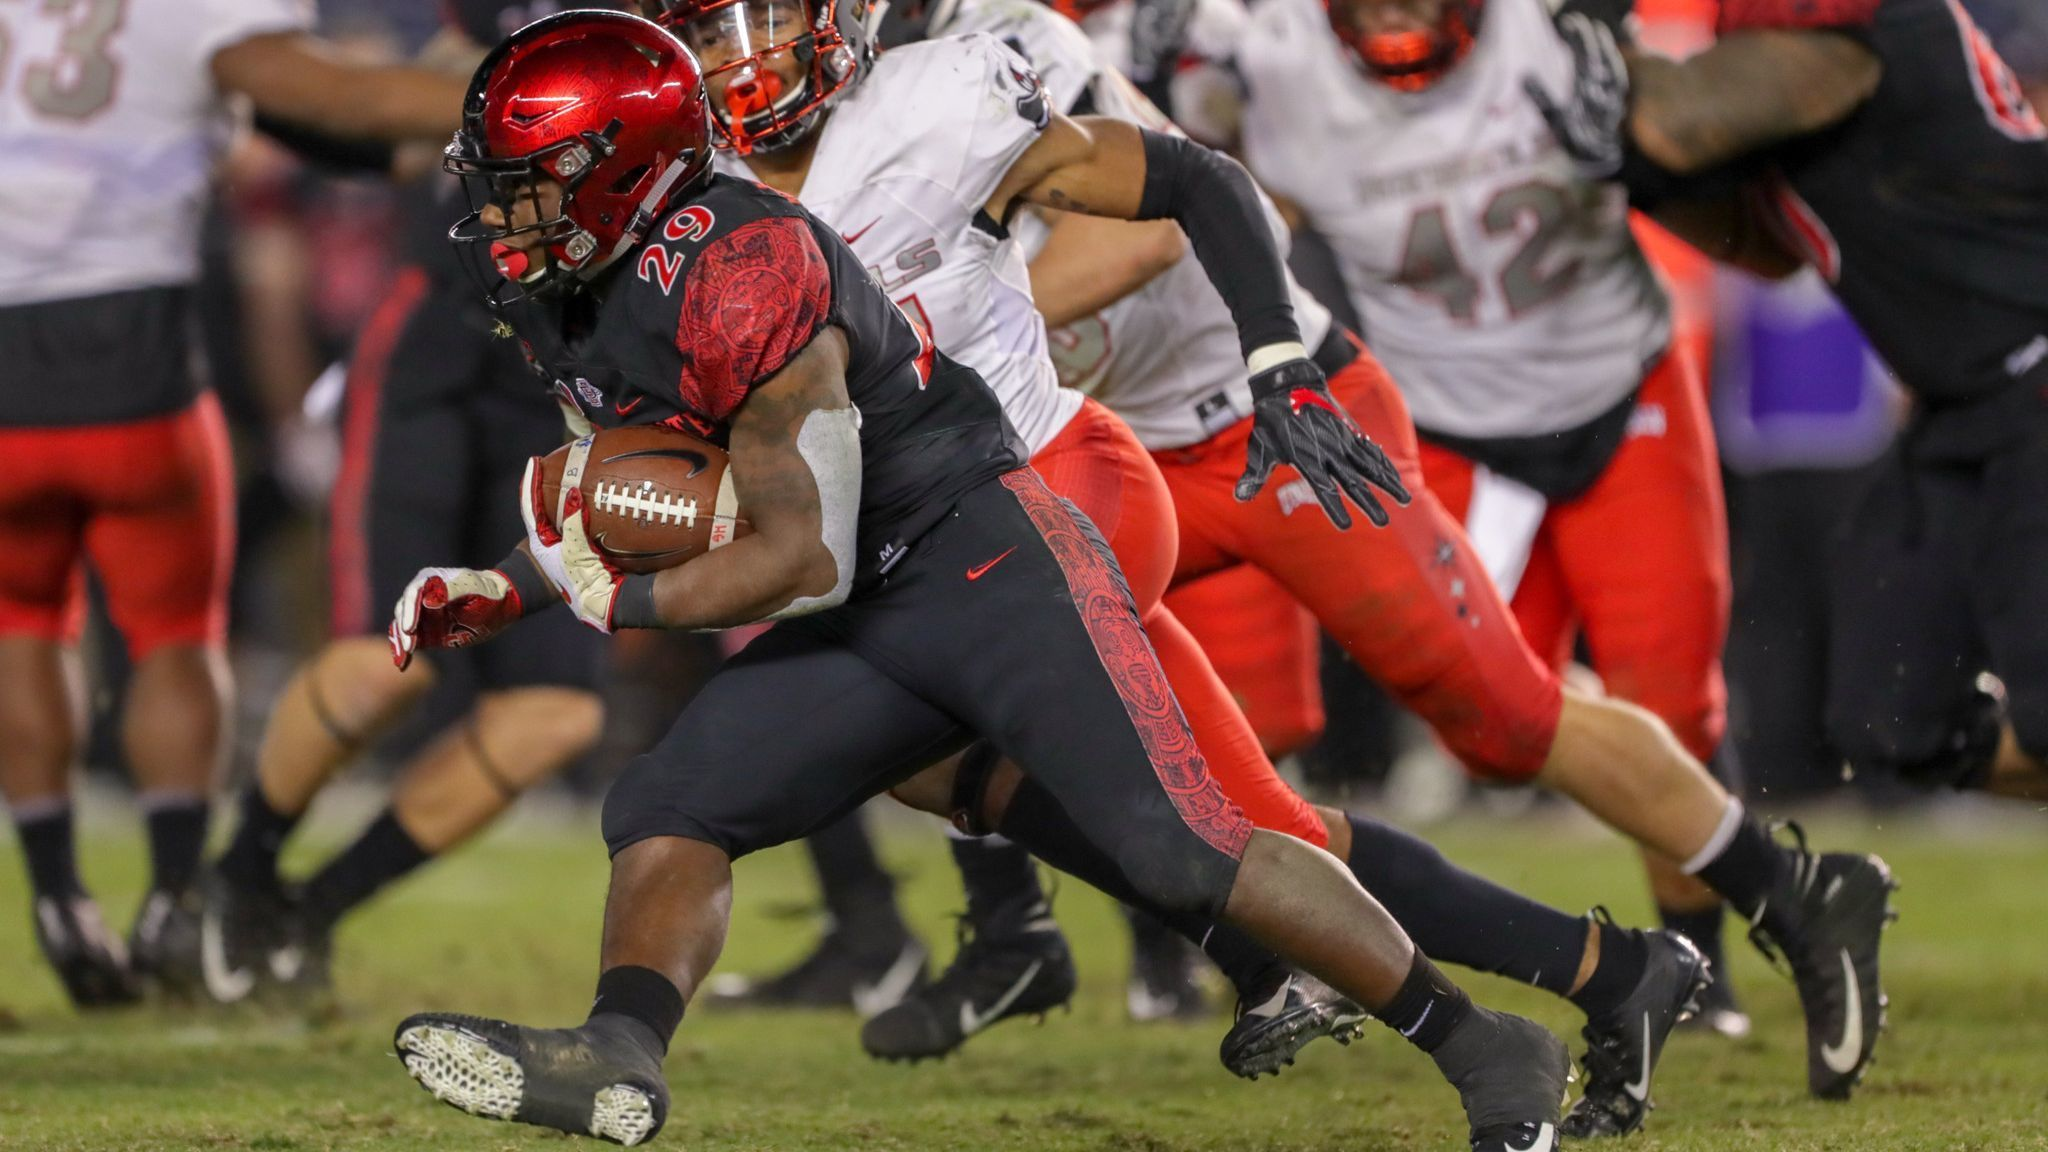 Explosiveness has been absent from Aztecs' running game this season